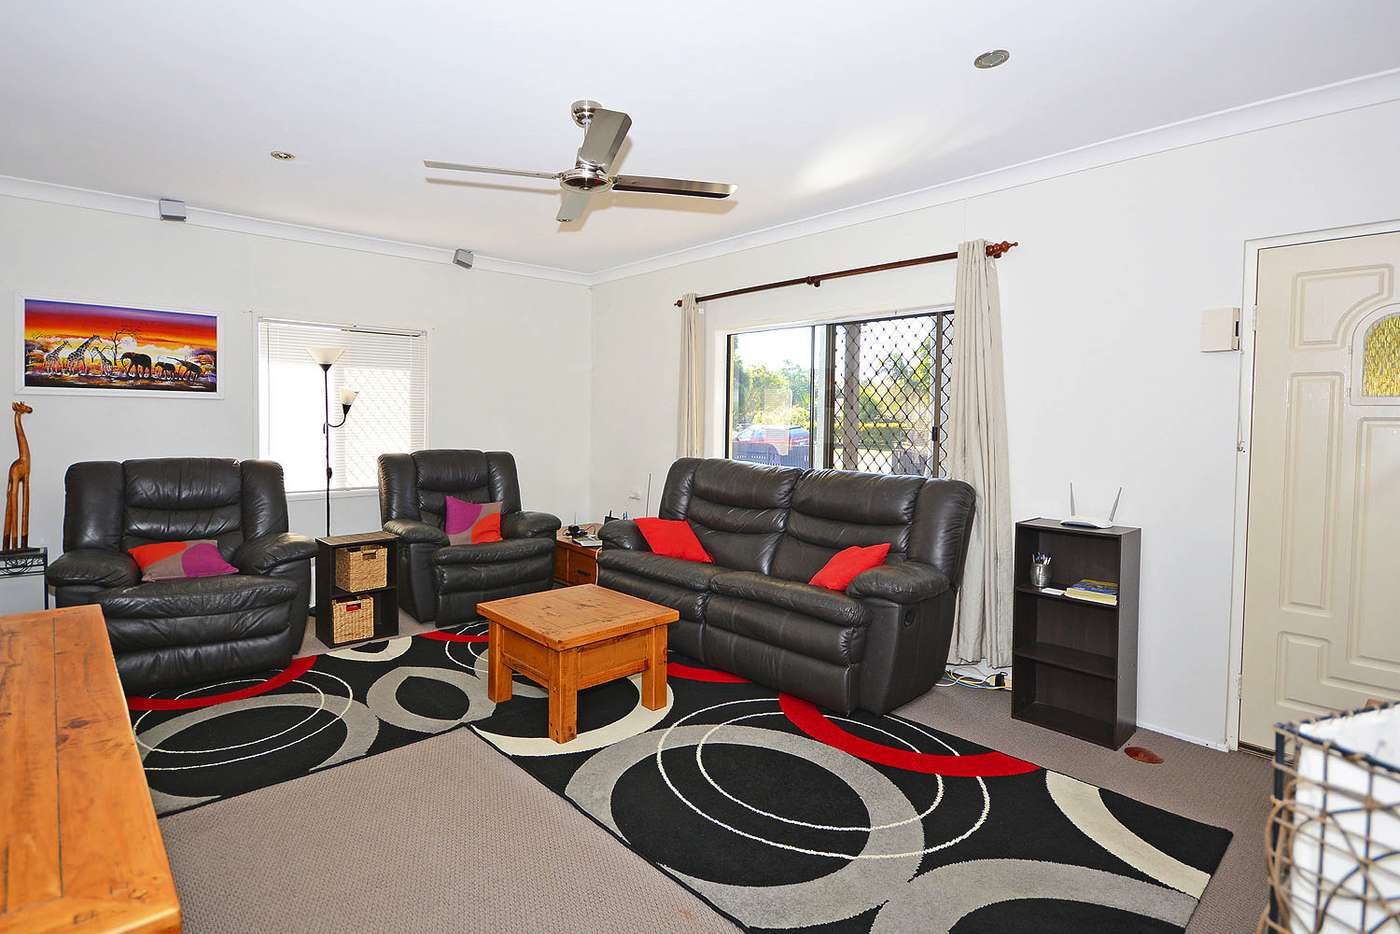 Sixth view of Homely house listing, 26 Snapper St, Kawungan QLD 4655